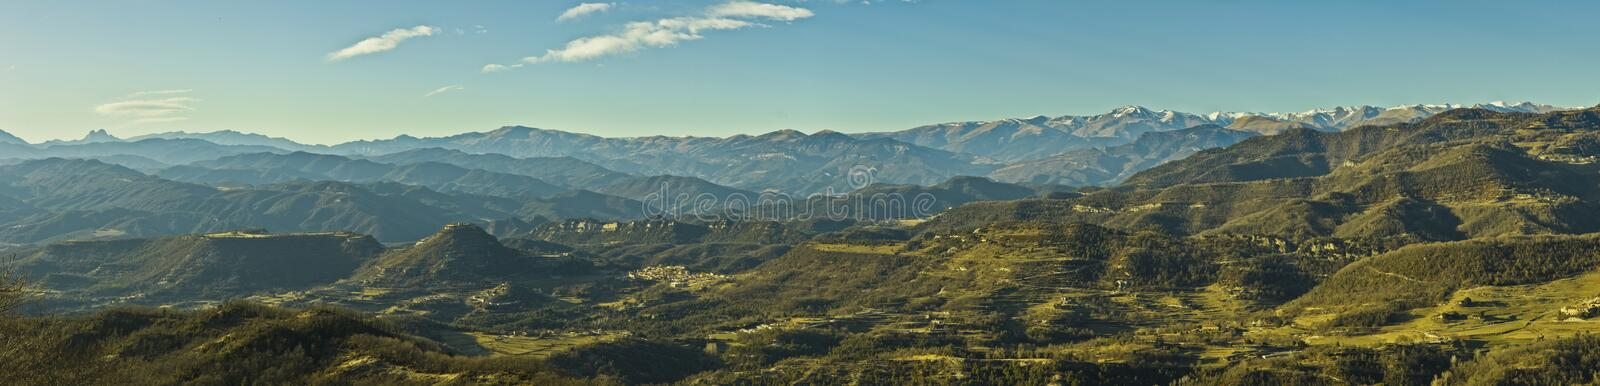 Pyrenees and Pyrenean foothills stock photos